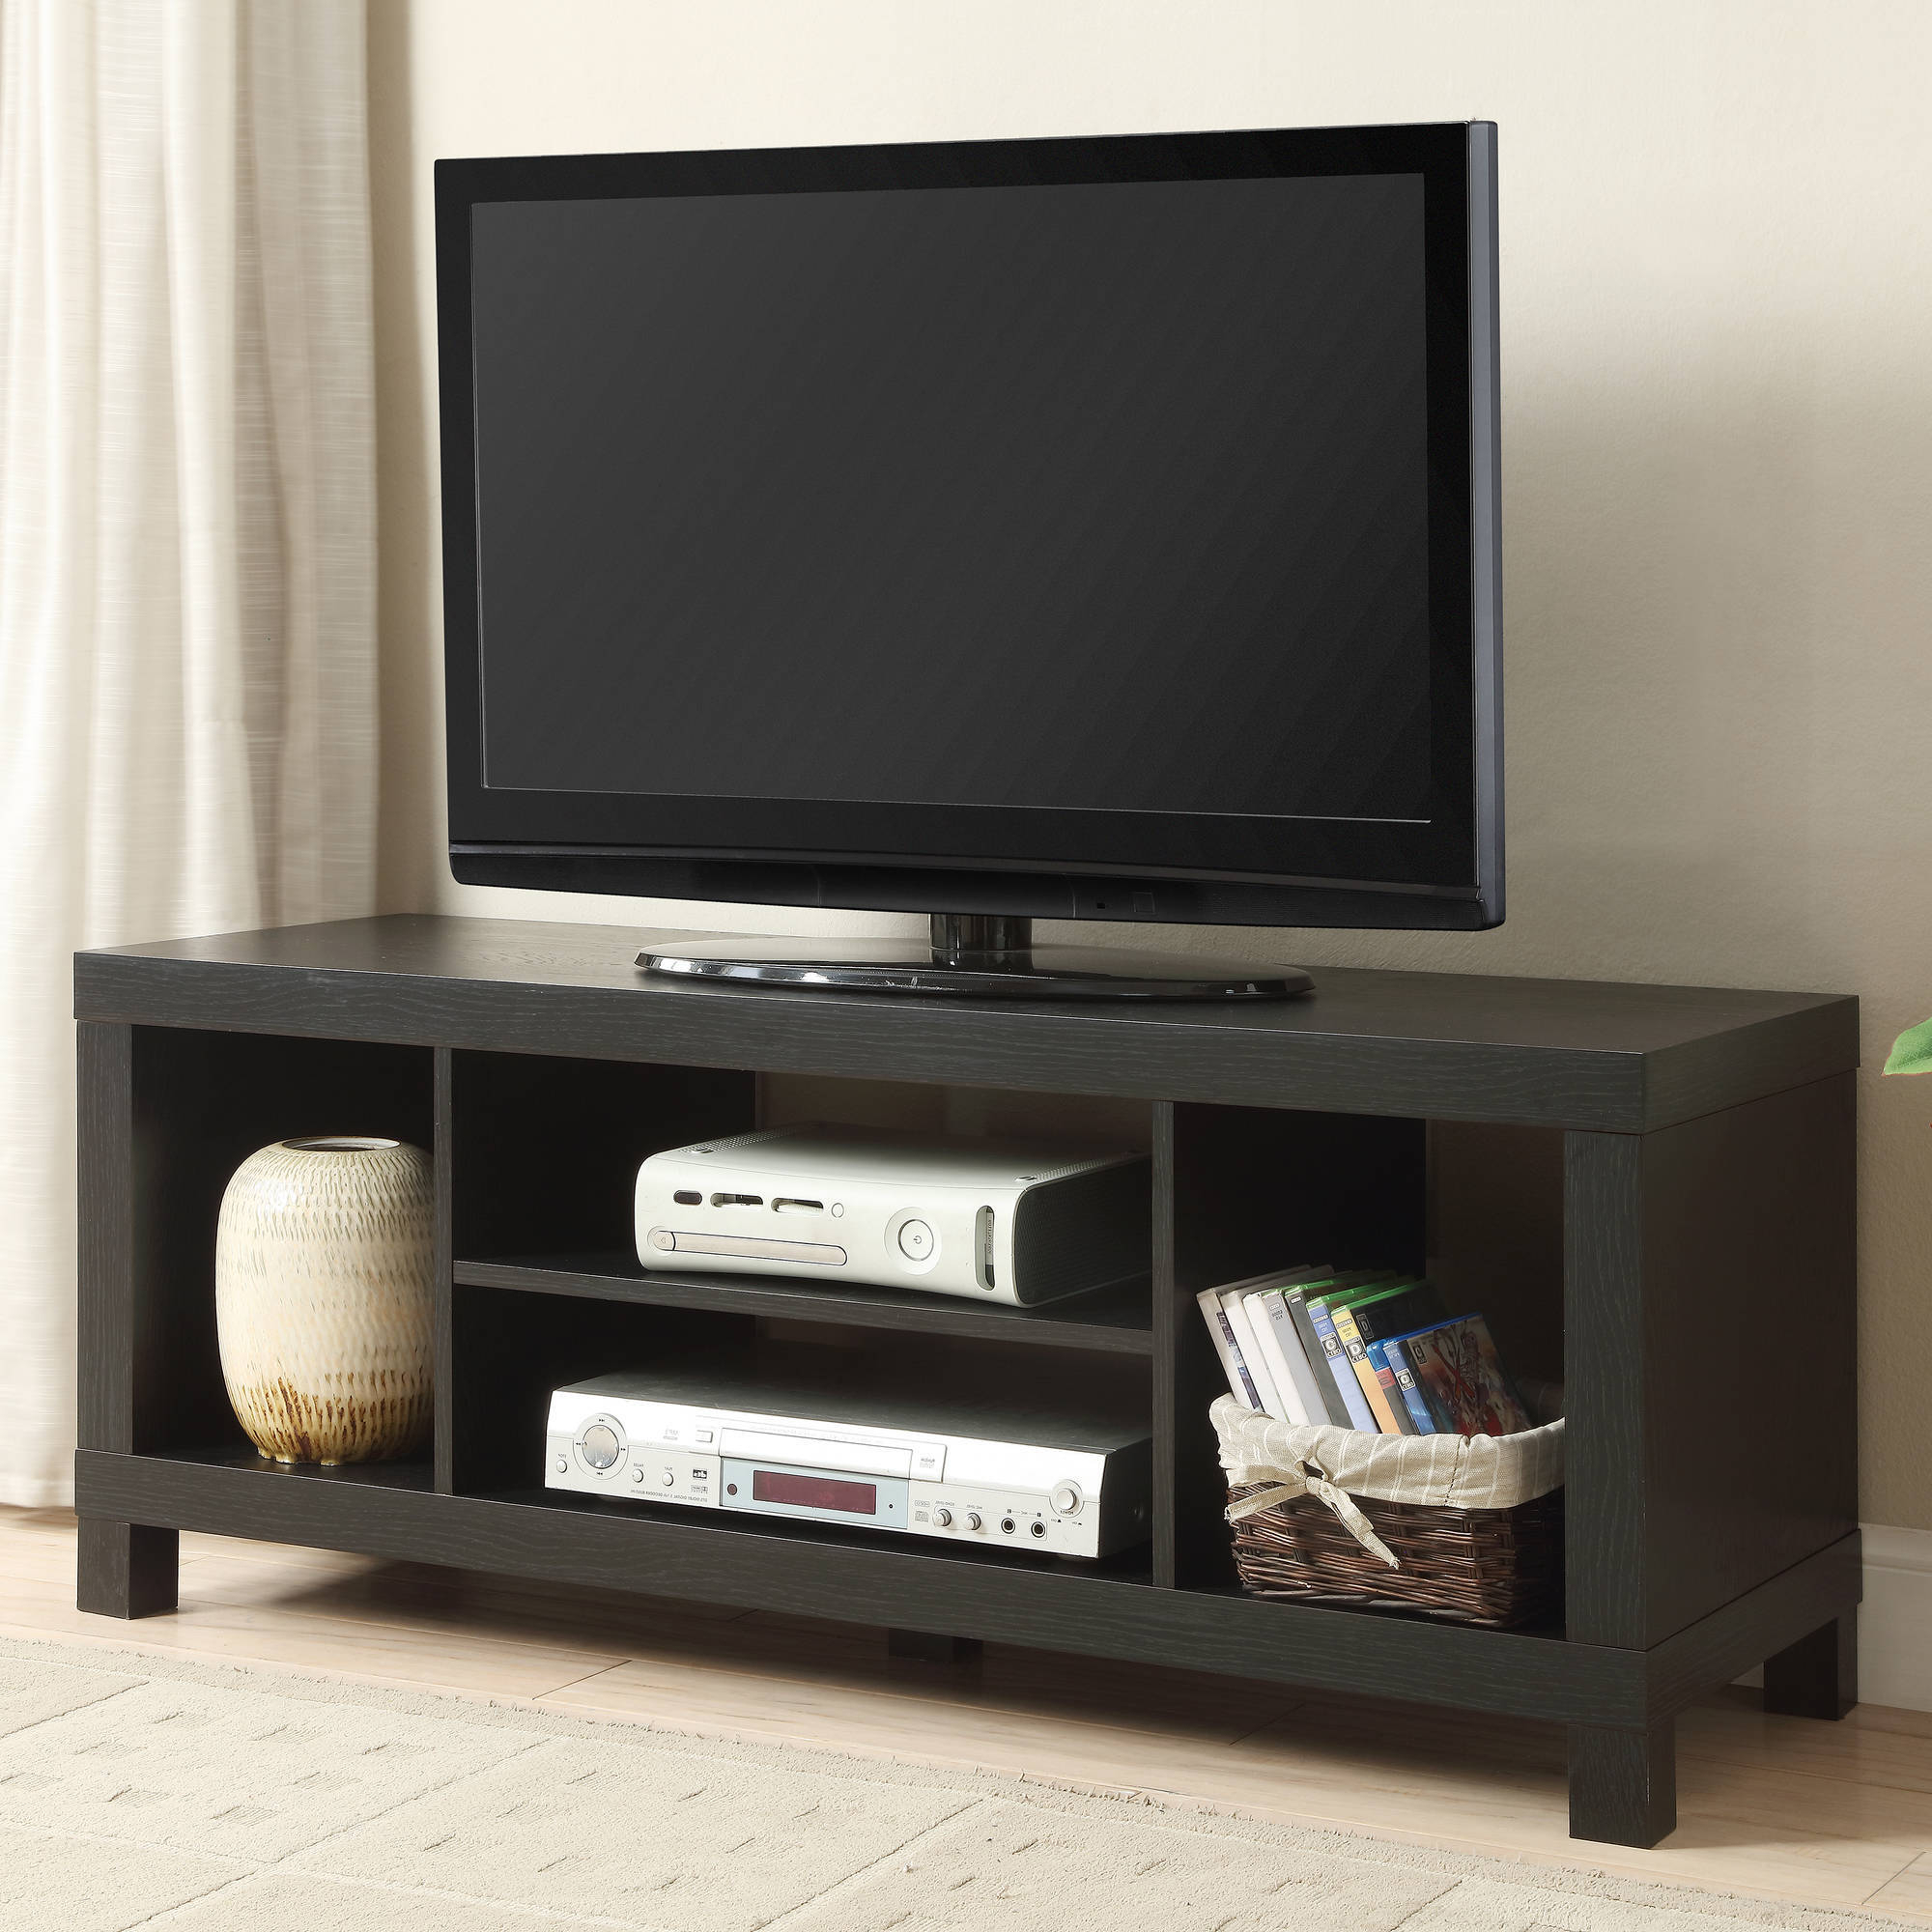 Tv Stand Entertainment Center Home Theater Media Storage In Fashionable Modern Black Tabletop Tv Stands (View 6 of 10)